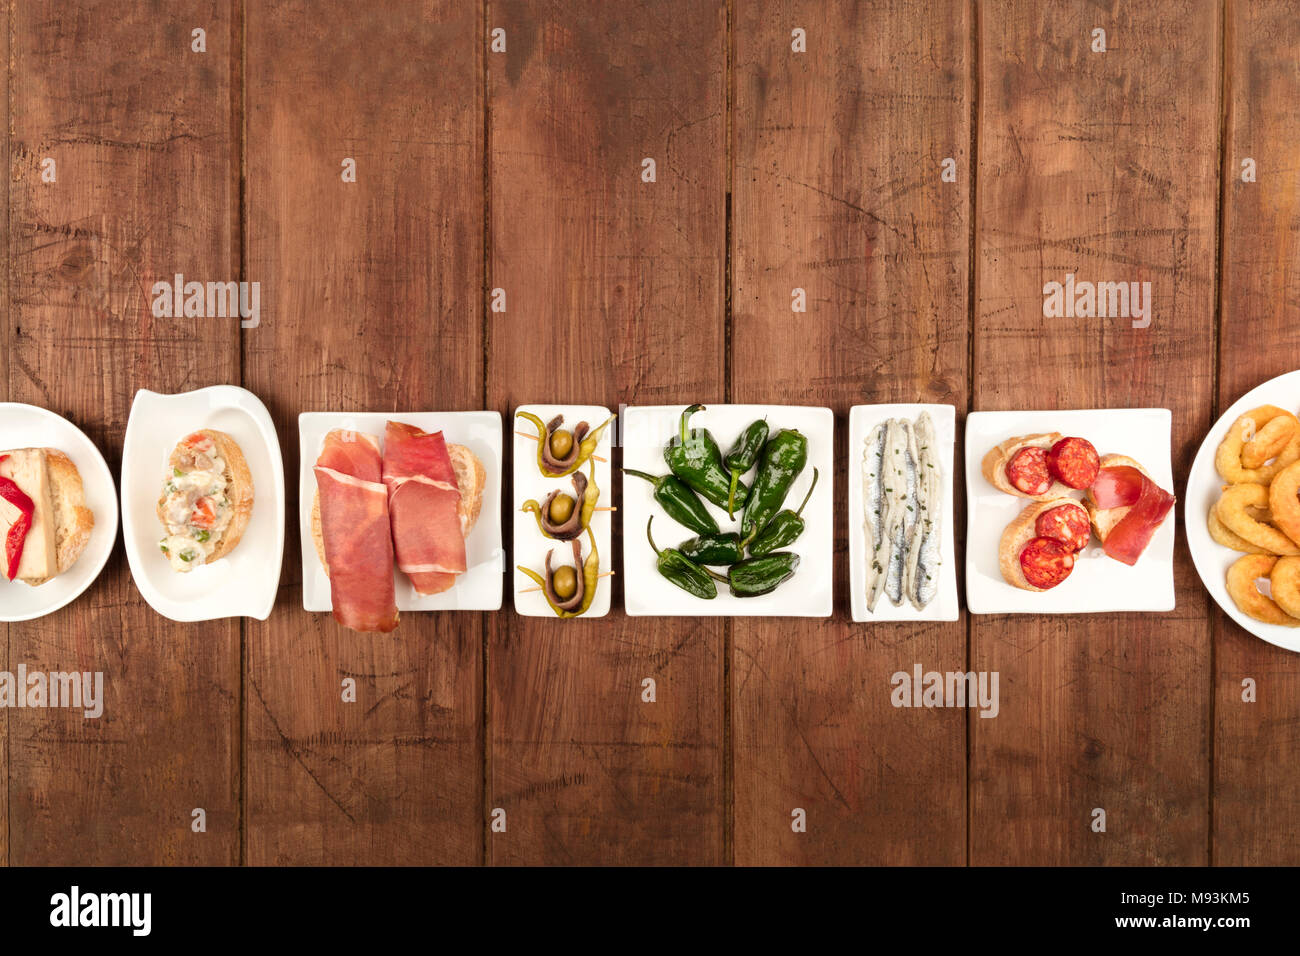 An overhead photo of an assortment of Spanish tapas food, shot from the top on a dark rustic background with a place for text - Stock Image